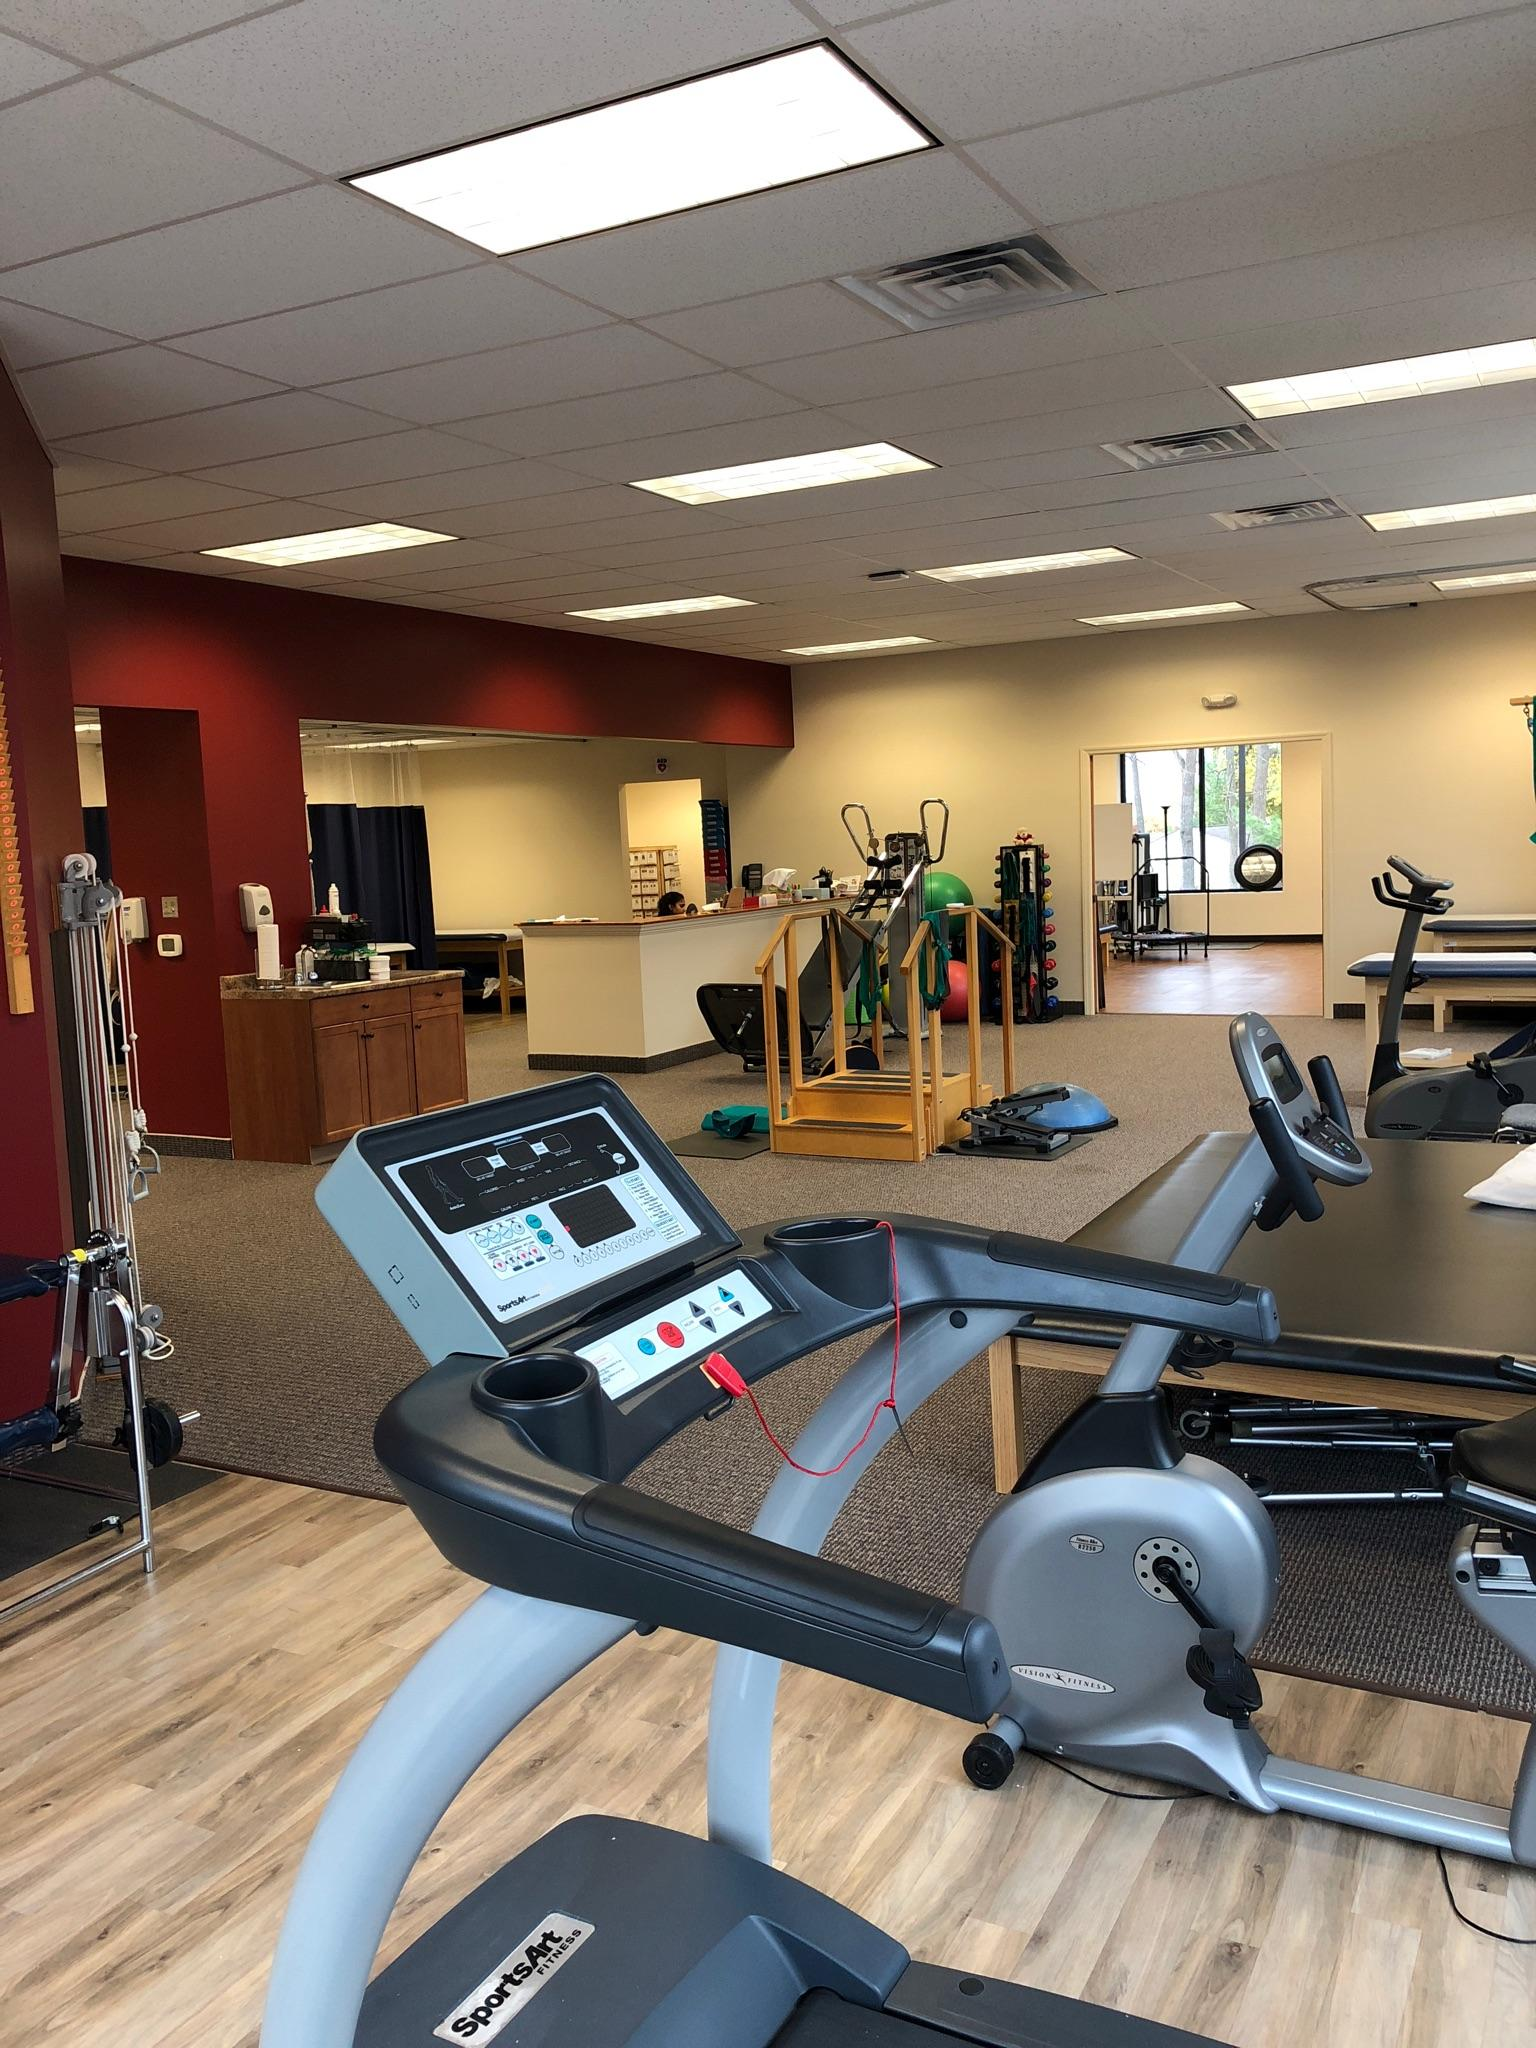 Here is a photo of the clean interior of our physical therapy clinic in Bridgewater, New Jersey.